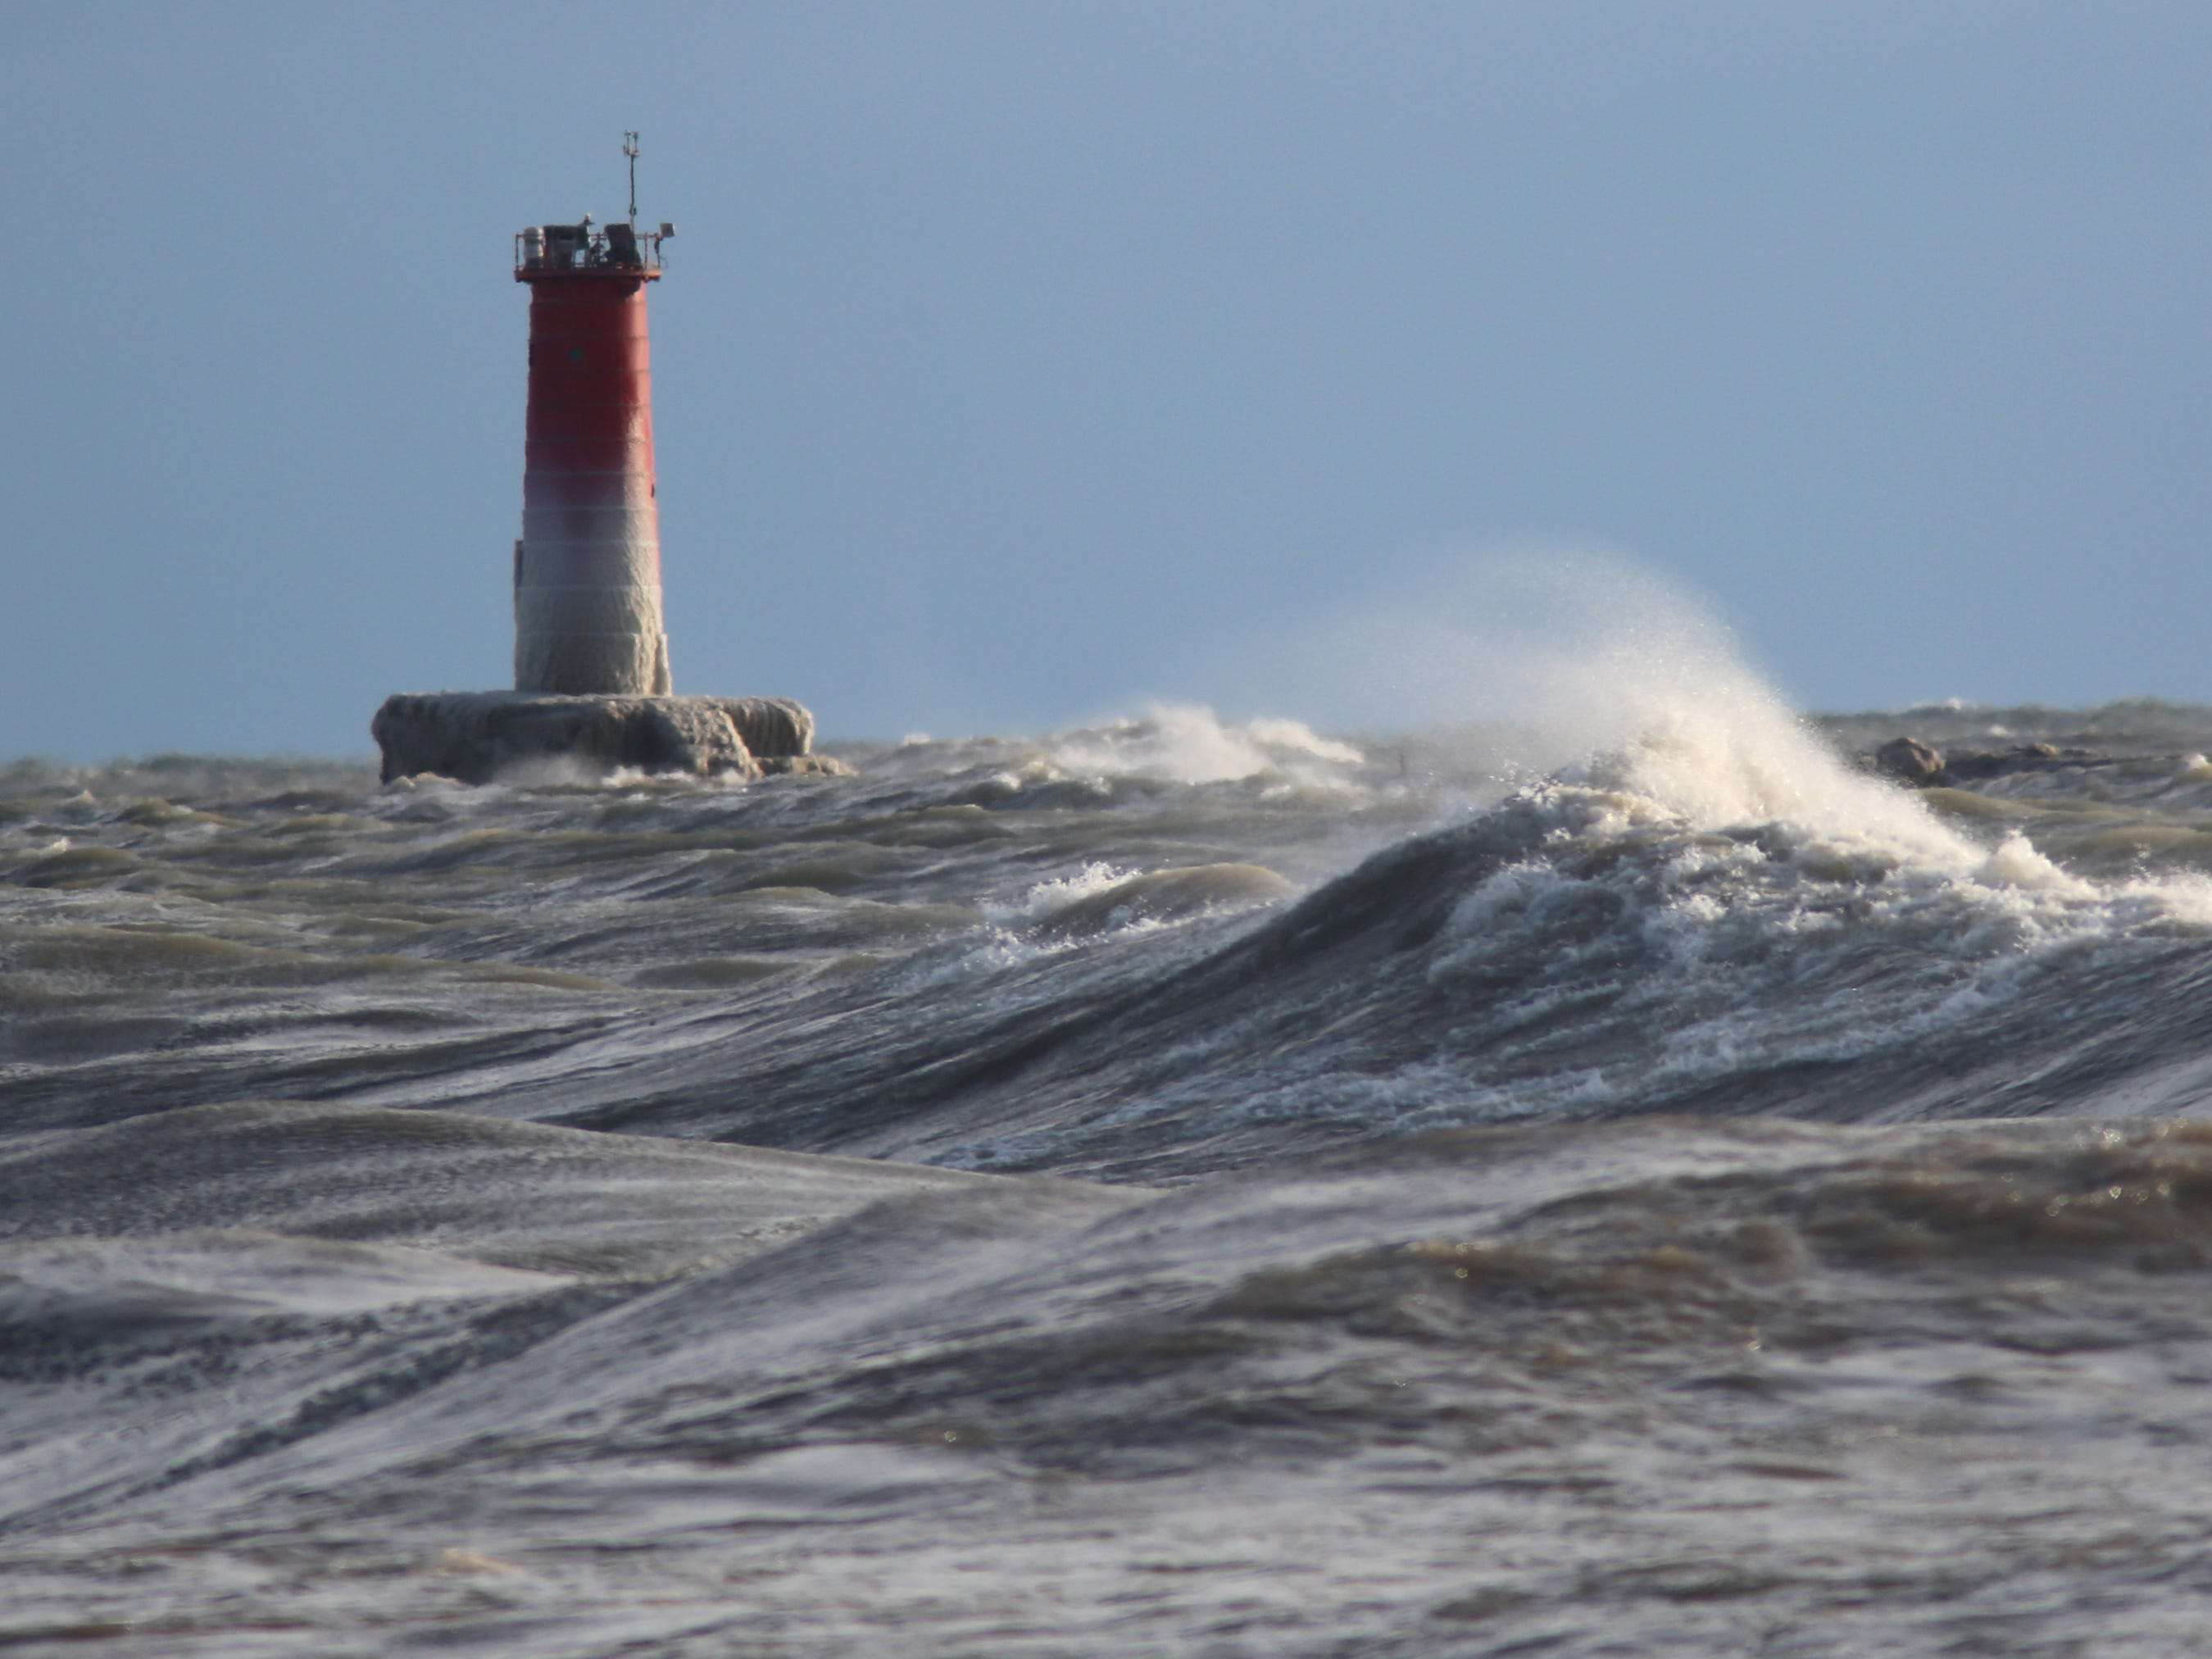 Whitecaps spray water near the Sheboygan lighthouse, Friday, January 12, 2018, in Sheboygan, Wis.